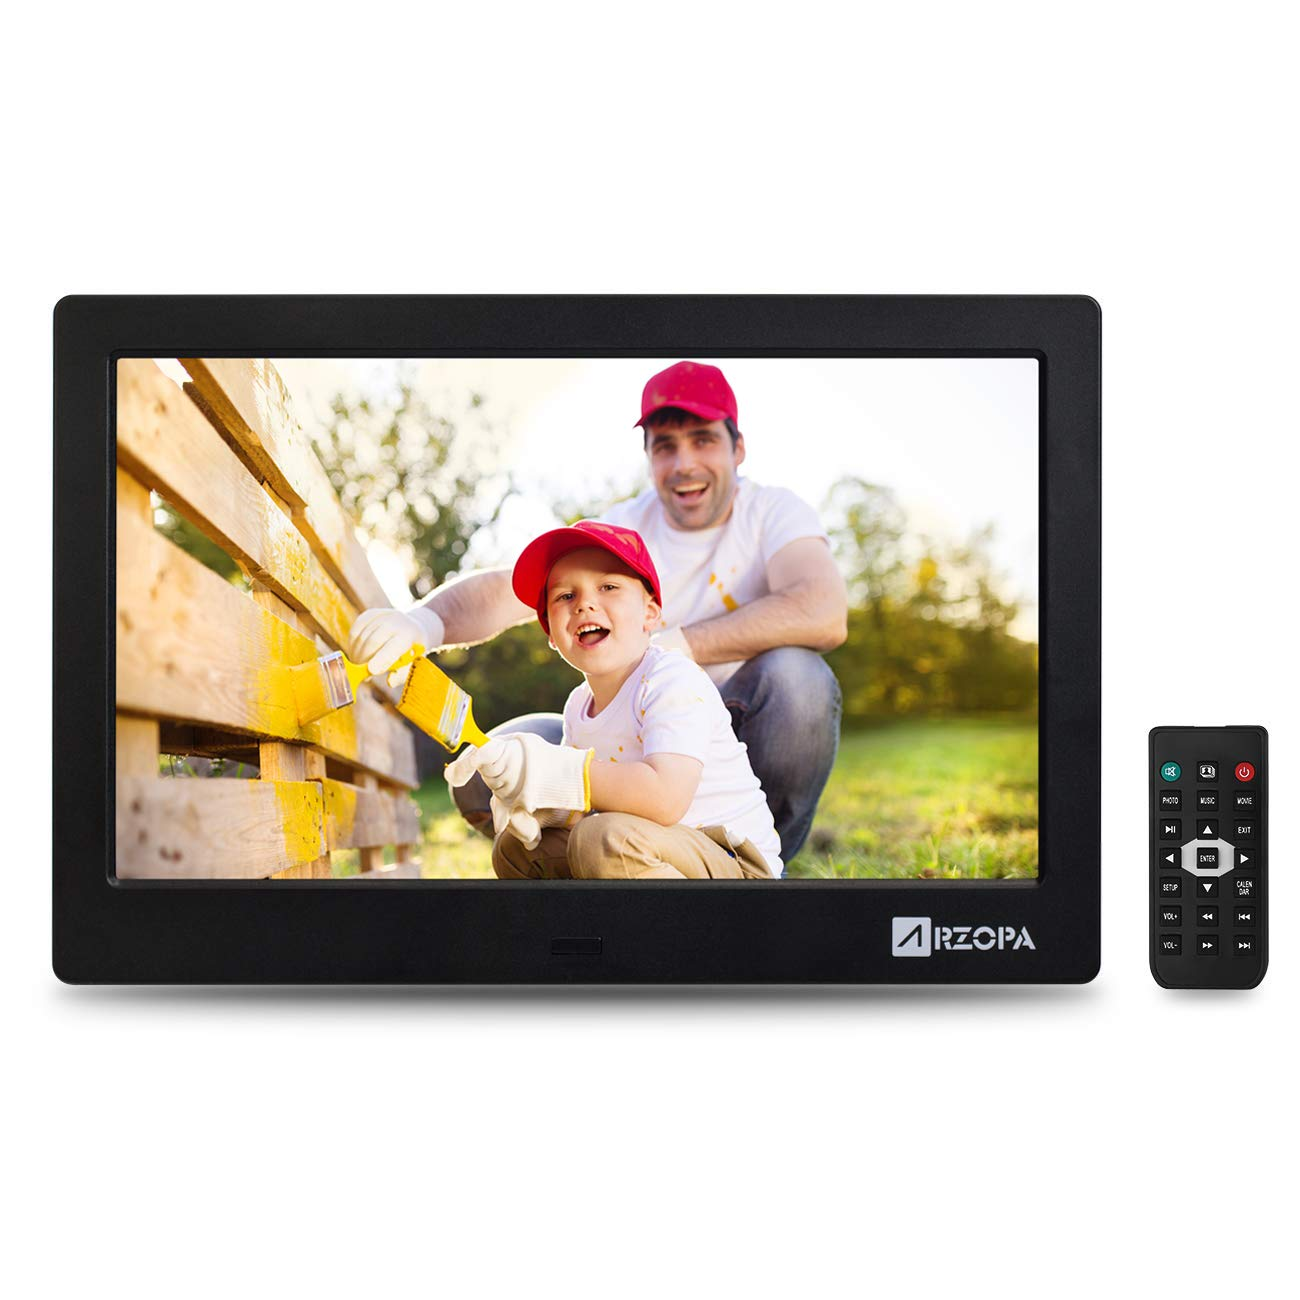 Arzopa 10 inch Digital Photo Frames Widescreen Digital Picture Frames Support MP3 MP4 Videos and Player Pictures Player with Calendar Function and Remote Control Black by Arzopa